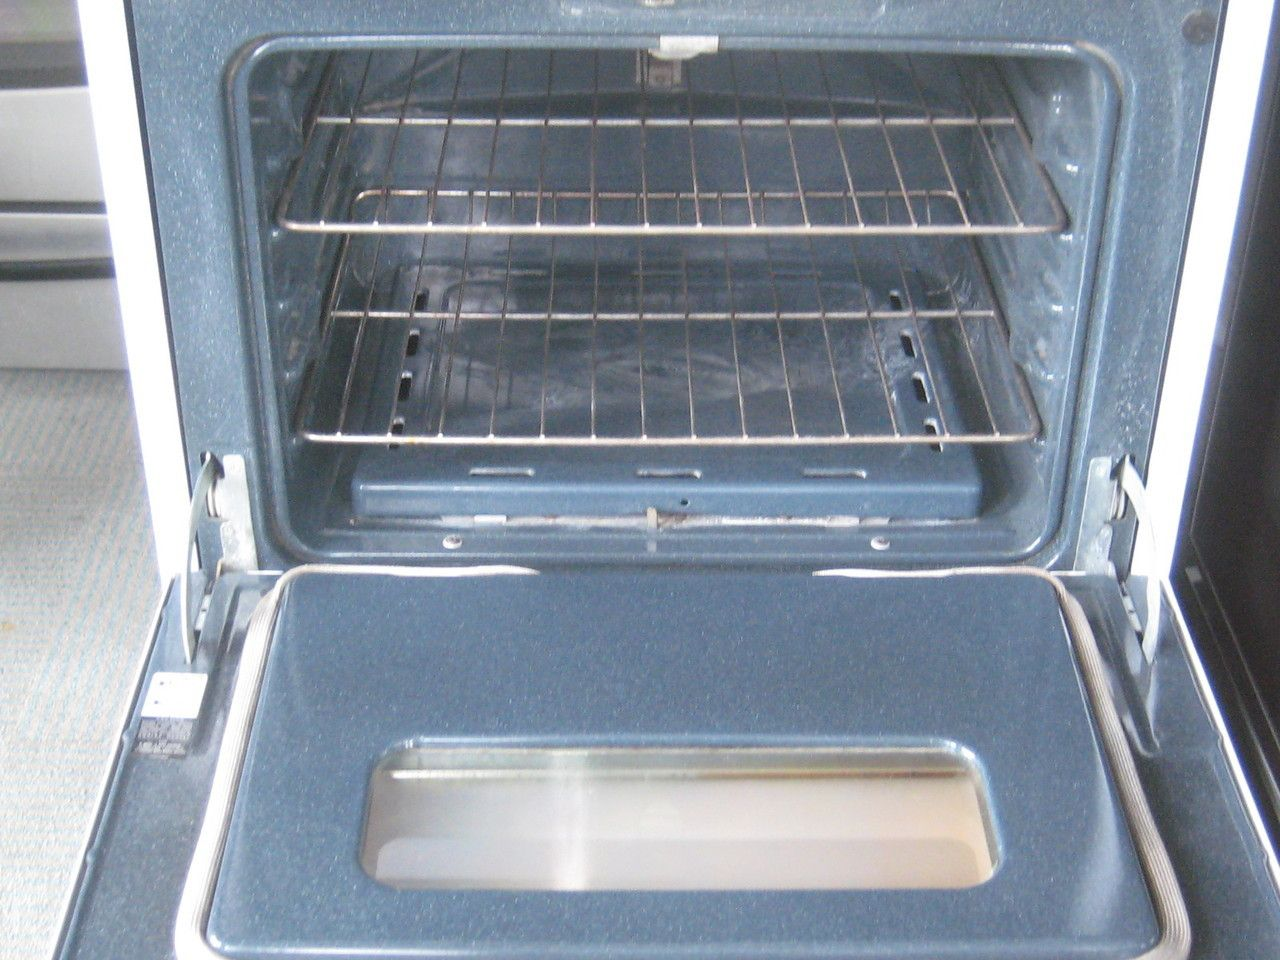 Appliance City - KENMORE STAINLESS 30 INCH FREESTANDING GAS STOVE 4 ...